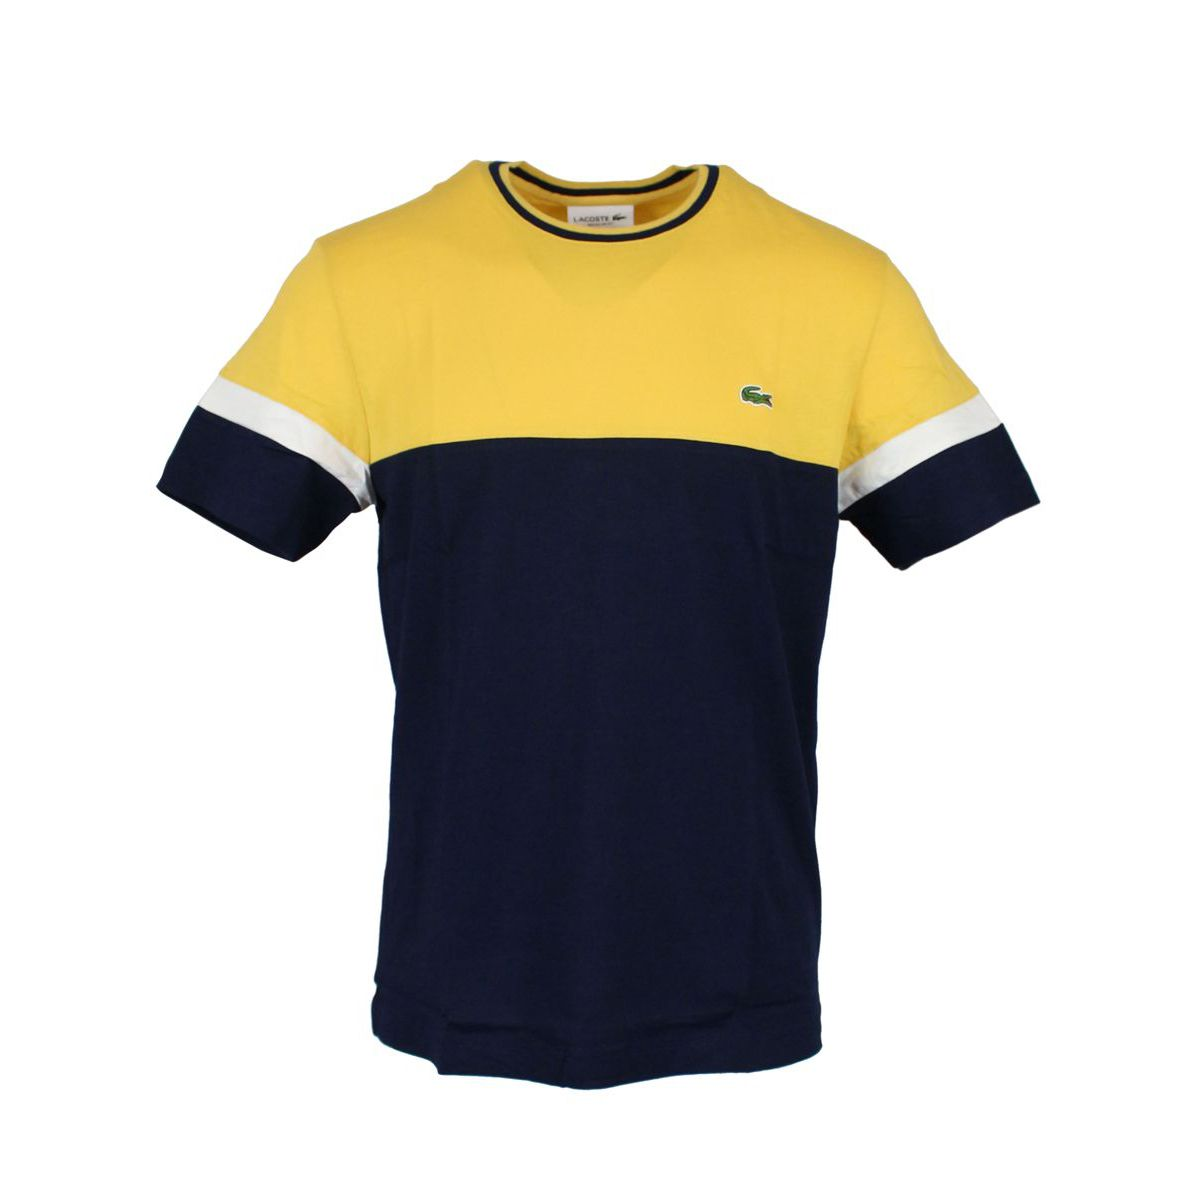 T-shirt in two-tone cotton Sunflower Lacoste